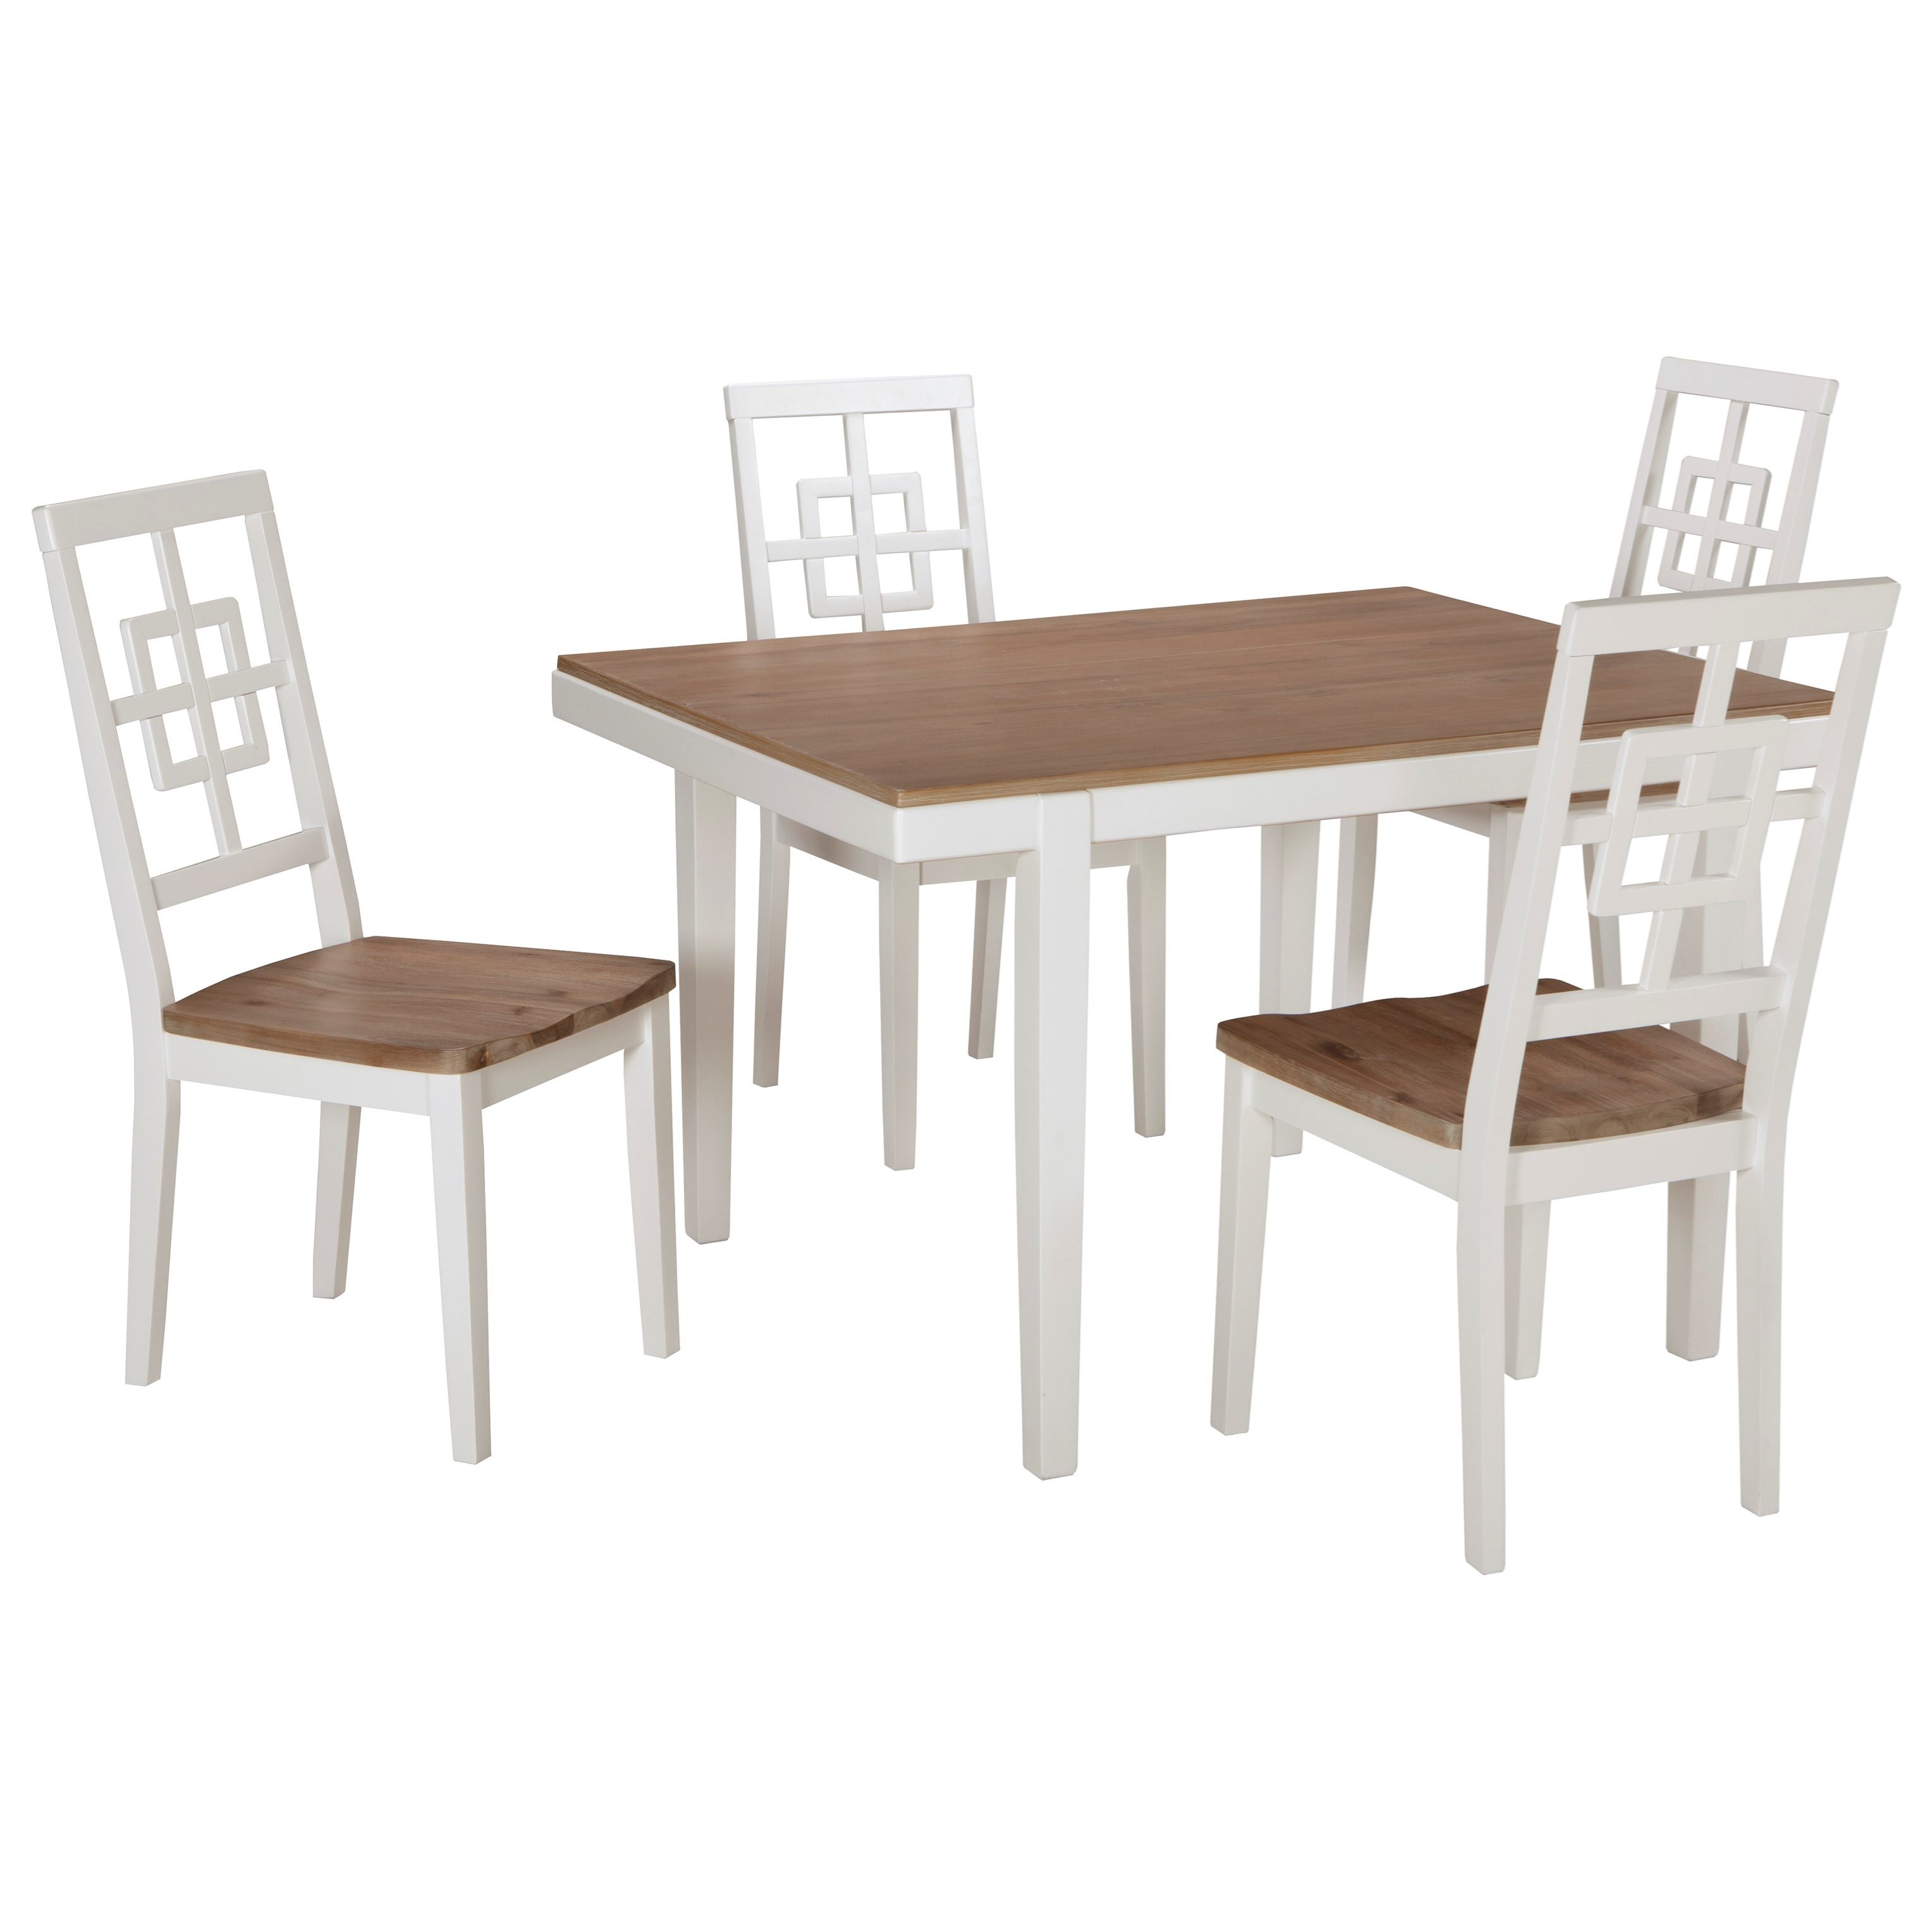 5-Piece Rectangular Dining Table Set